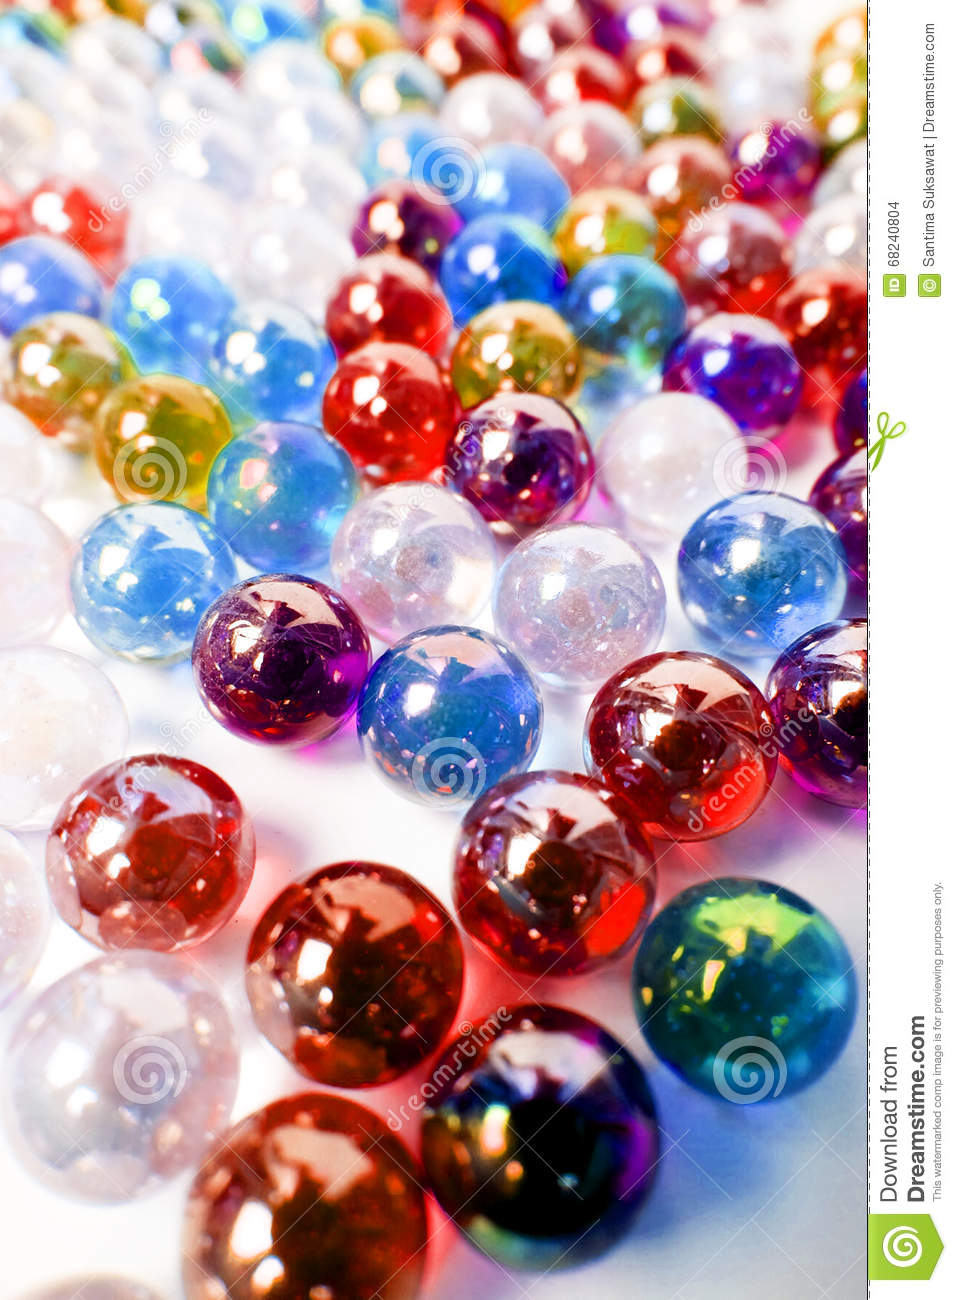 Good Wallpaper Marble Ball - colorfull-marble-ball-art-wallpaper-compose-68240804  Pictures_428236.jpg